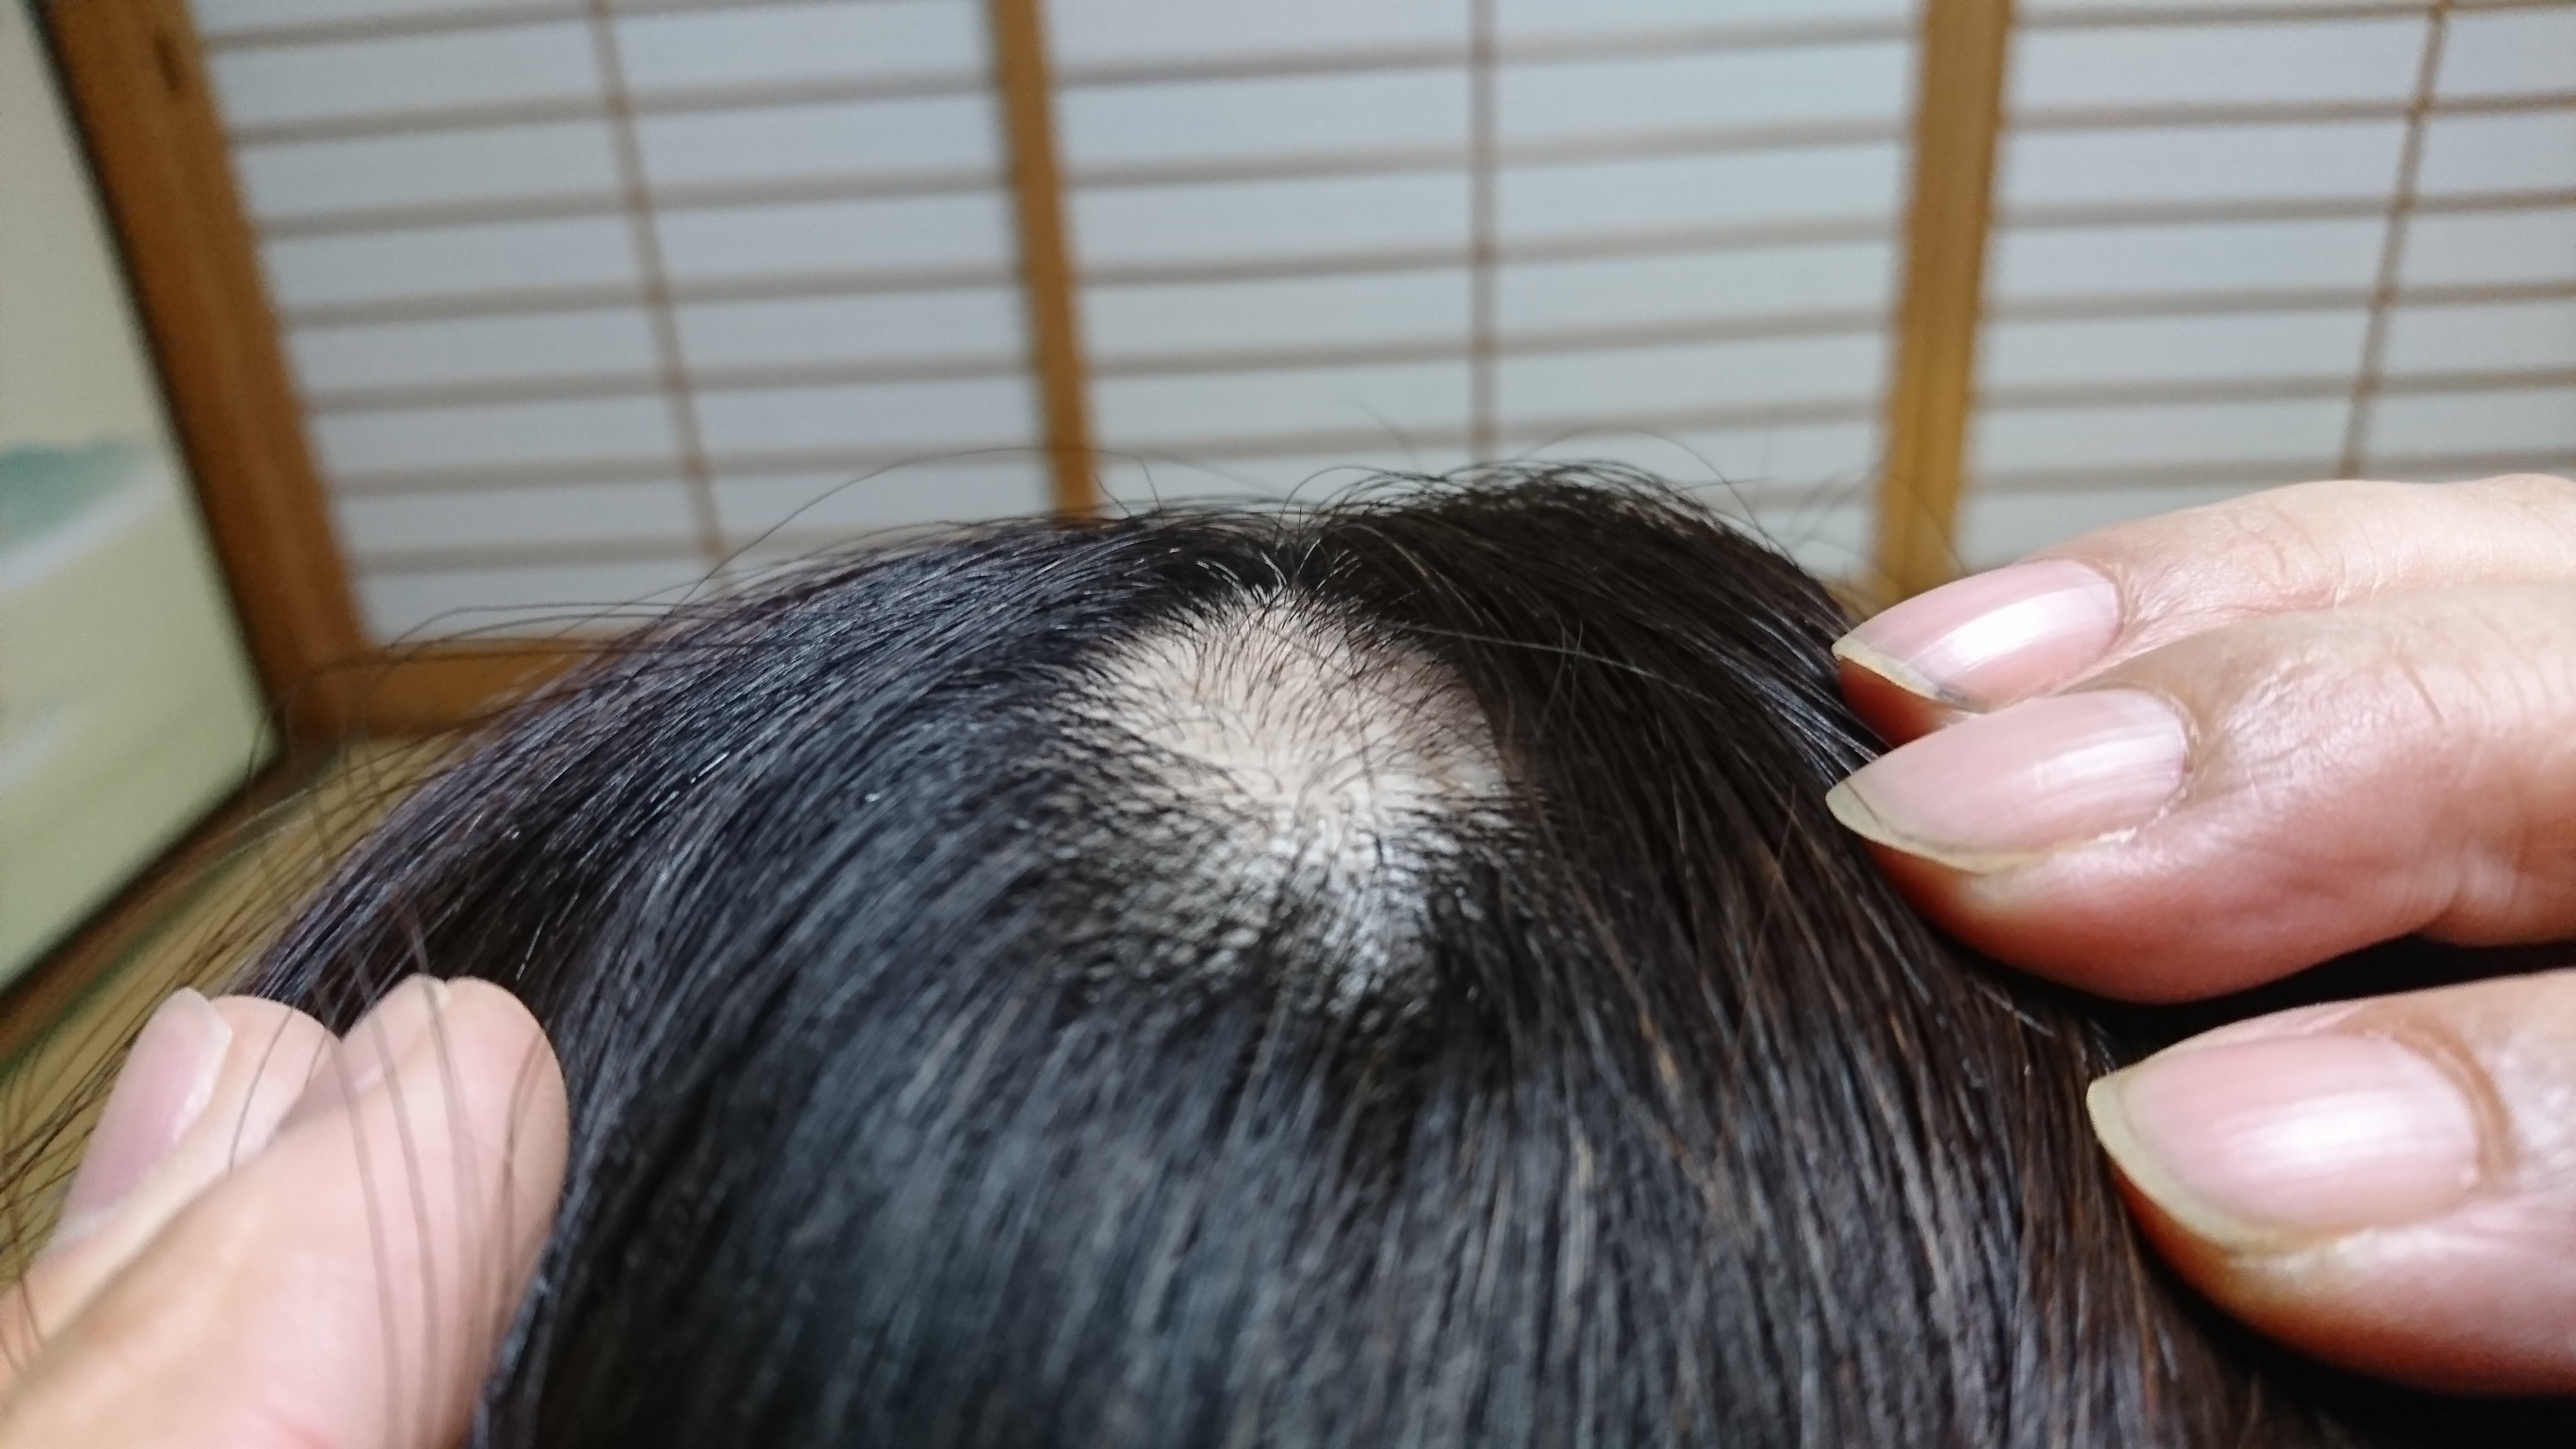 f:id:heiqi-acupuncture:20190314140648j:image